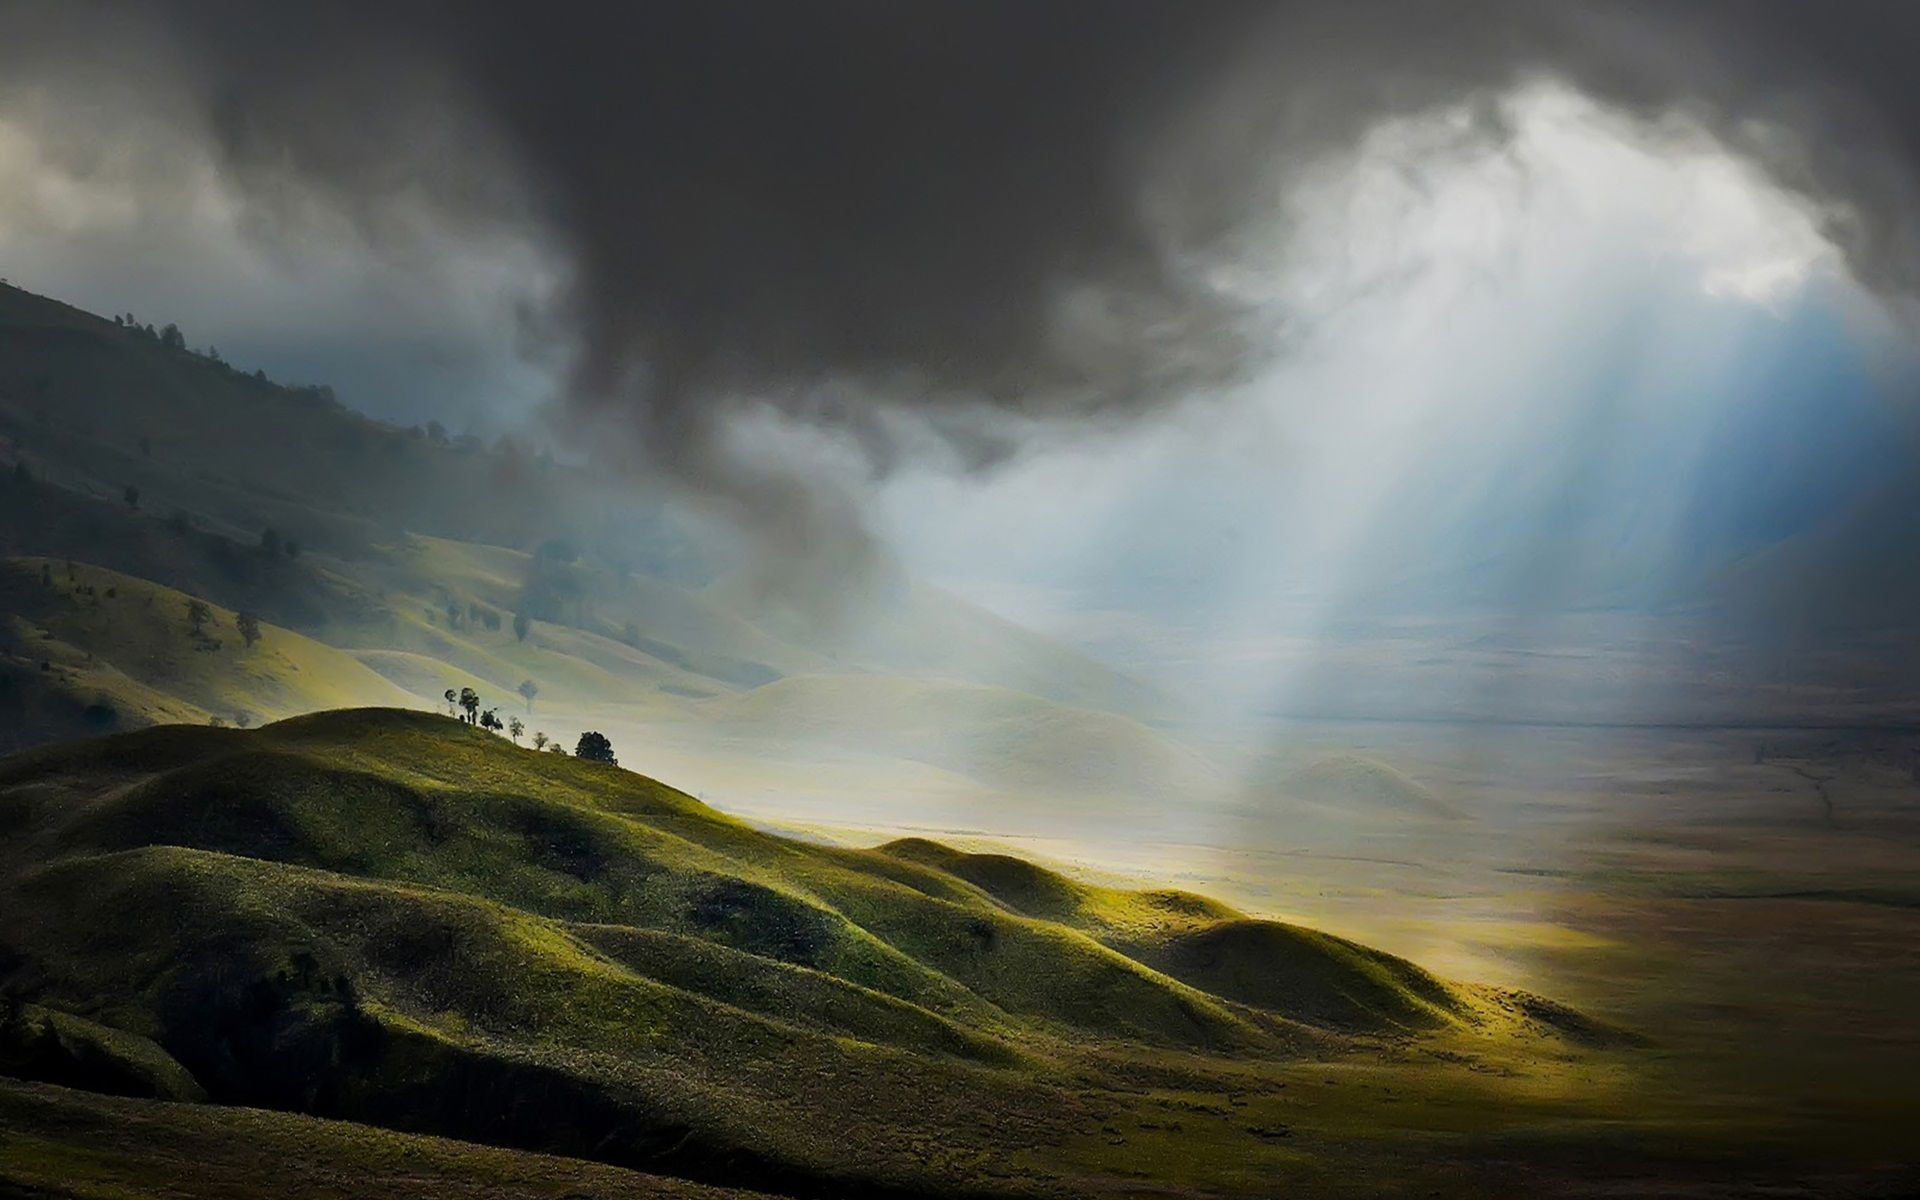 Natural Landscape Geography Nature Mountain Forest Landscape Fog National Geographic Photo Contest National Geographic Photography National Geographic Photos